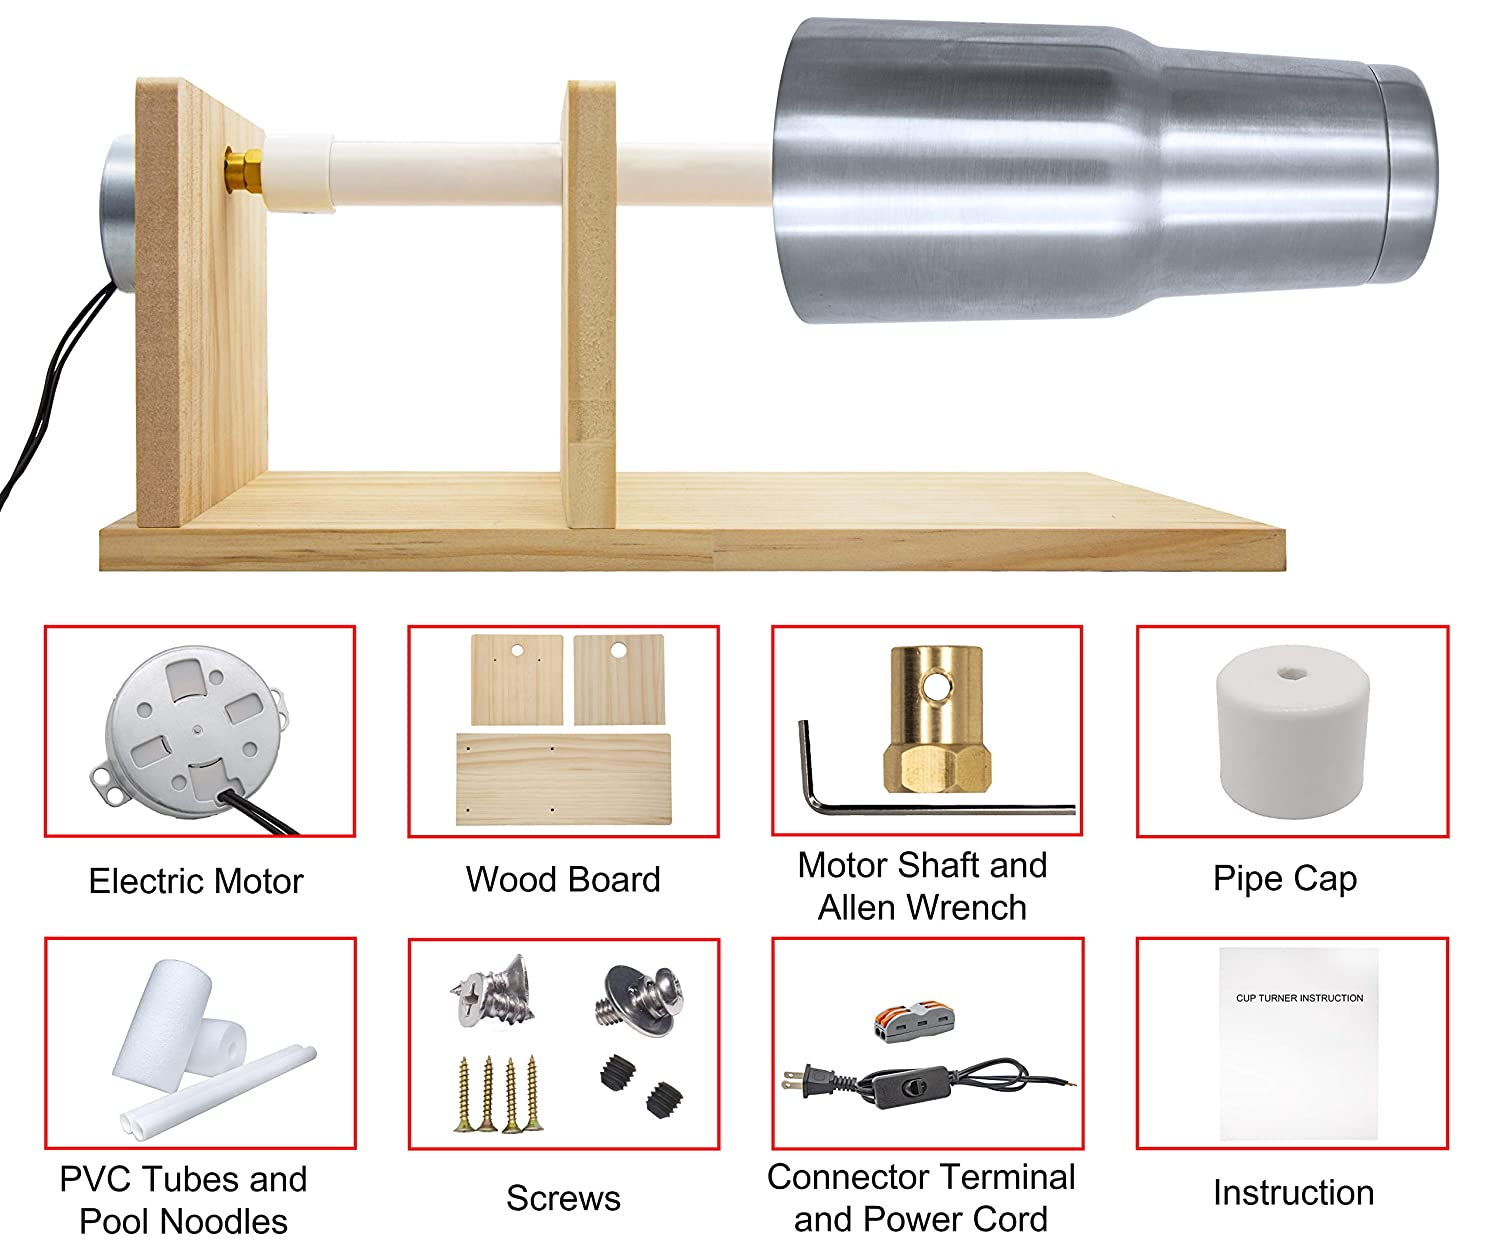 Cup Turner Kit for Personalize Tumbler Crafts Cuptisserie Cup Turners for Tumblers Comes with 2 Wands and 2 Foams Electric Tumbler Spinner with Rotisserie Motor